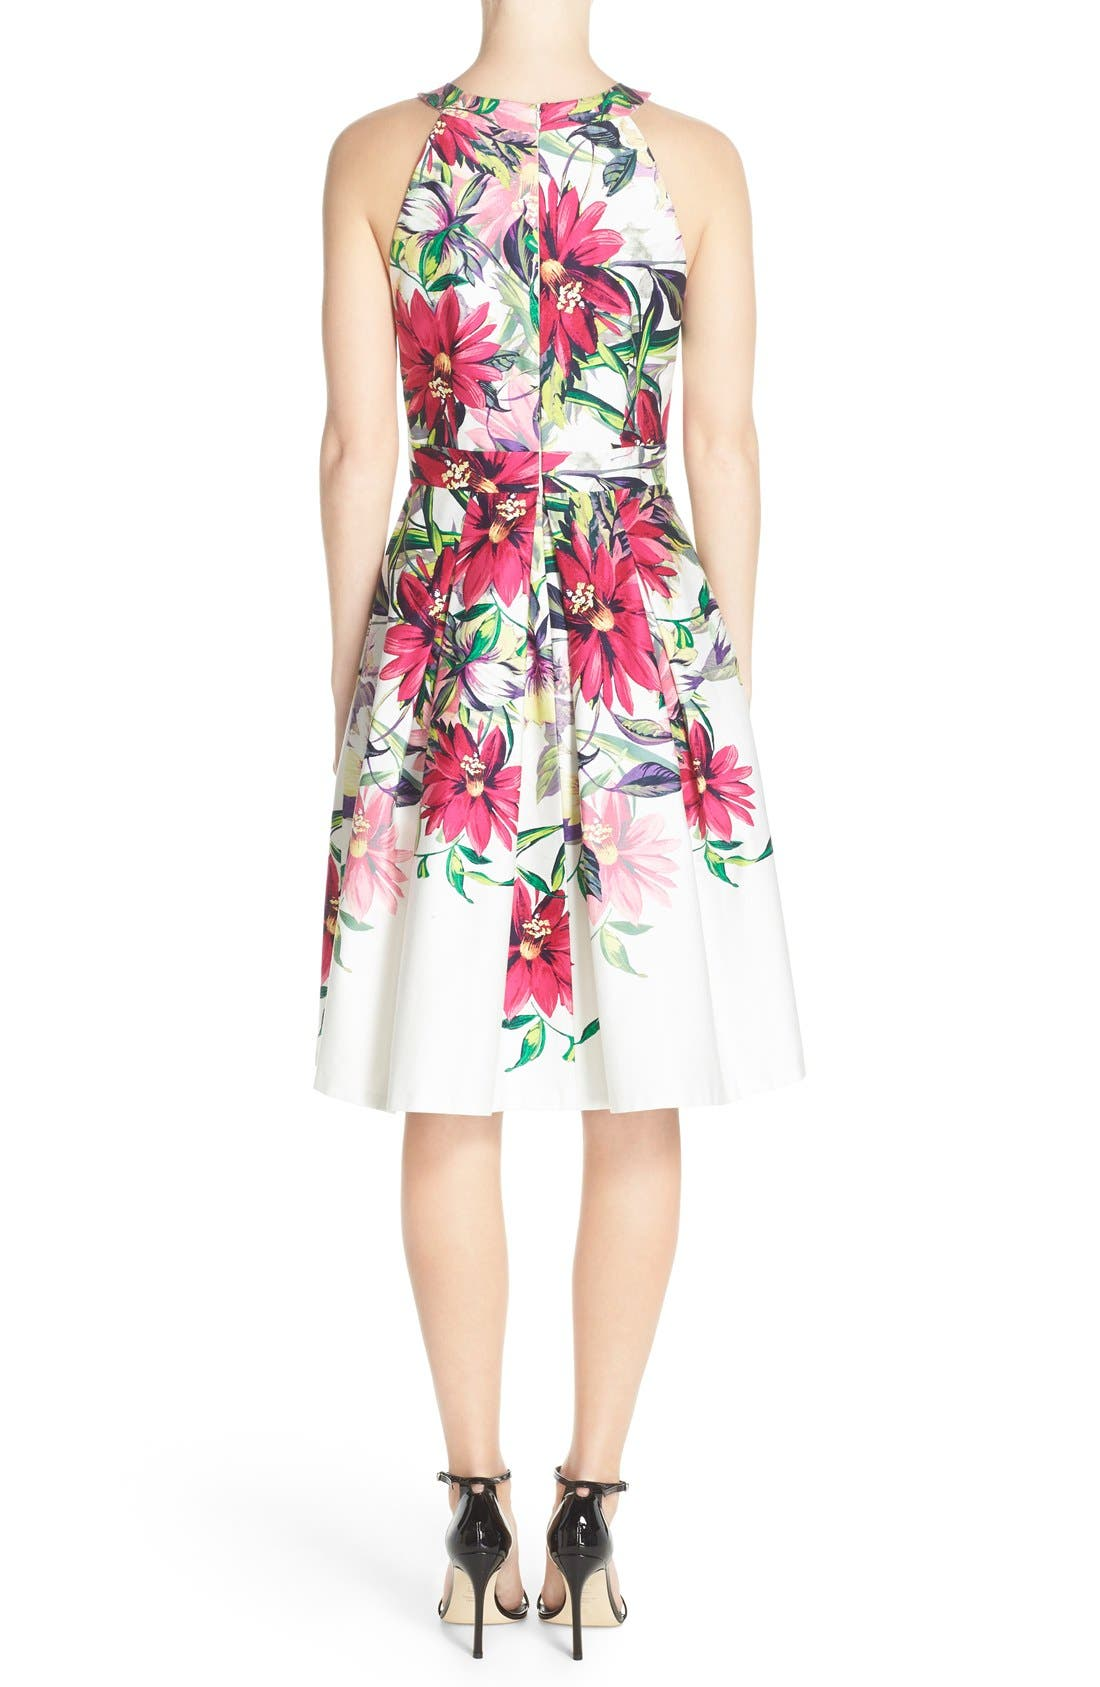 Floral Print Tea Length Fit & Flare Dress,                             Alternate thumbnail 2, color,                             Ivory/ Pink Print